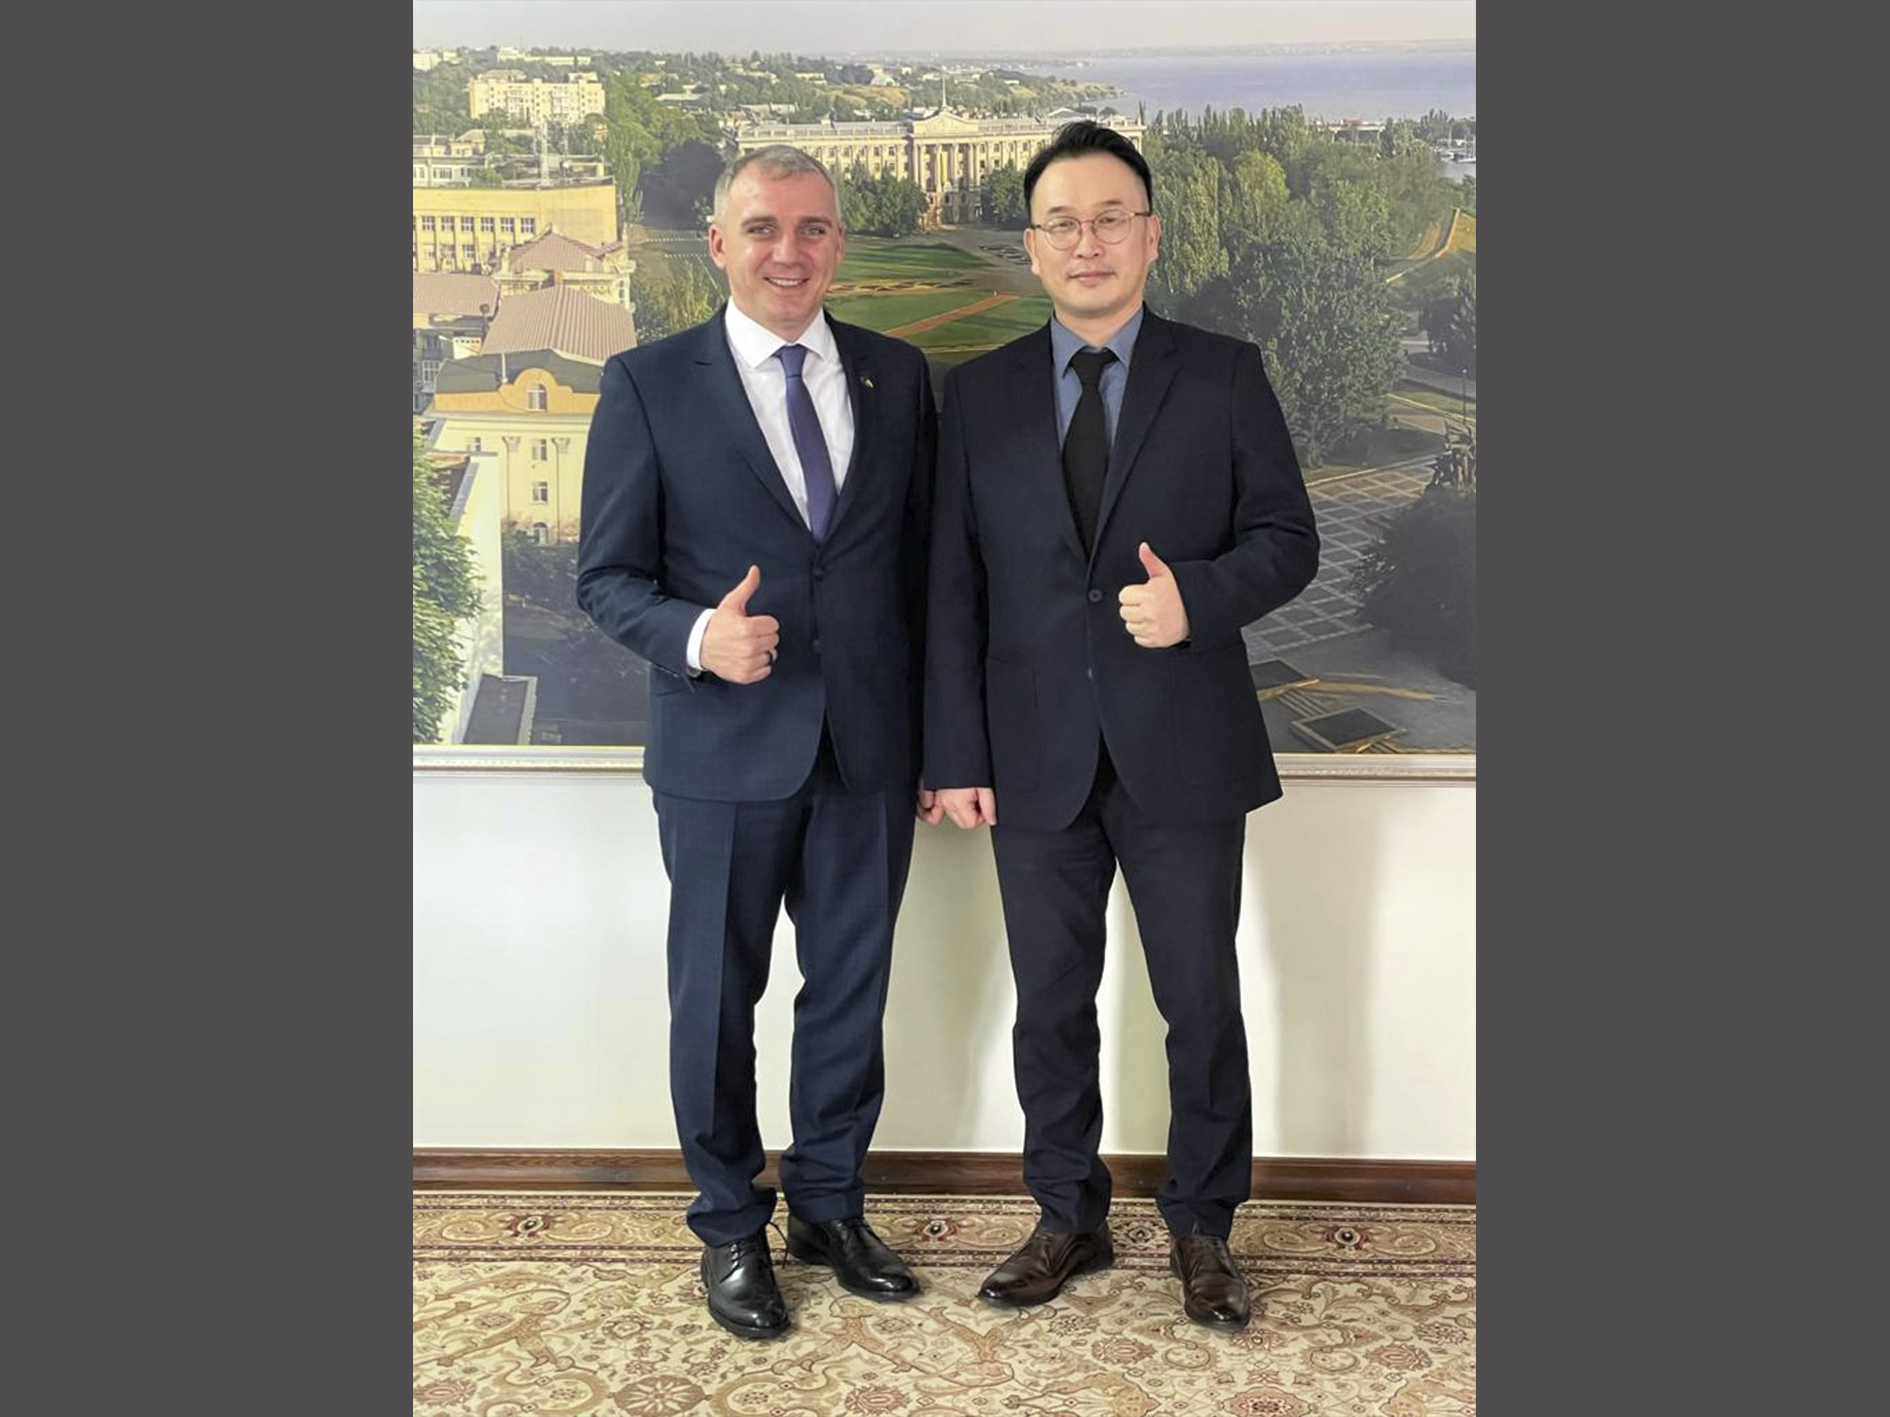 CEO with Mr.Senkevich, the Mayor of Mykolaiv